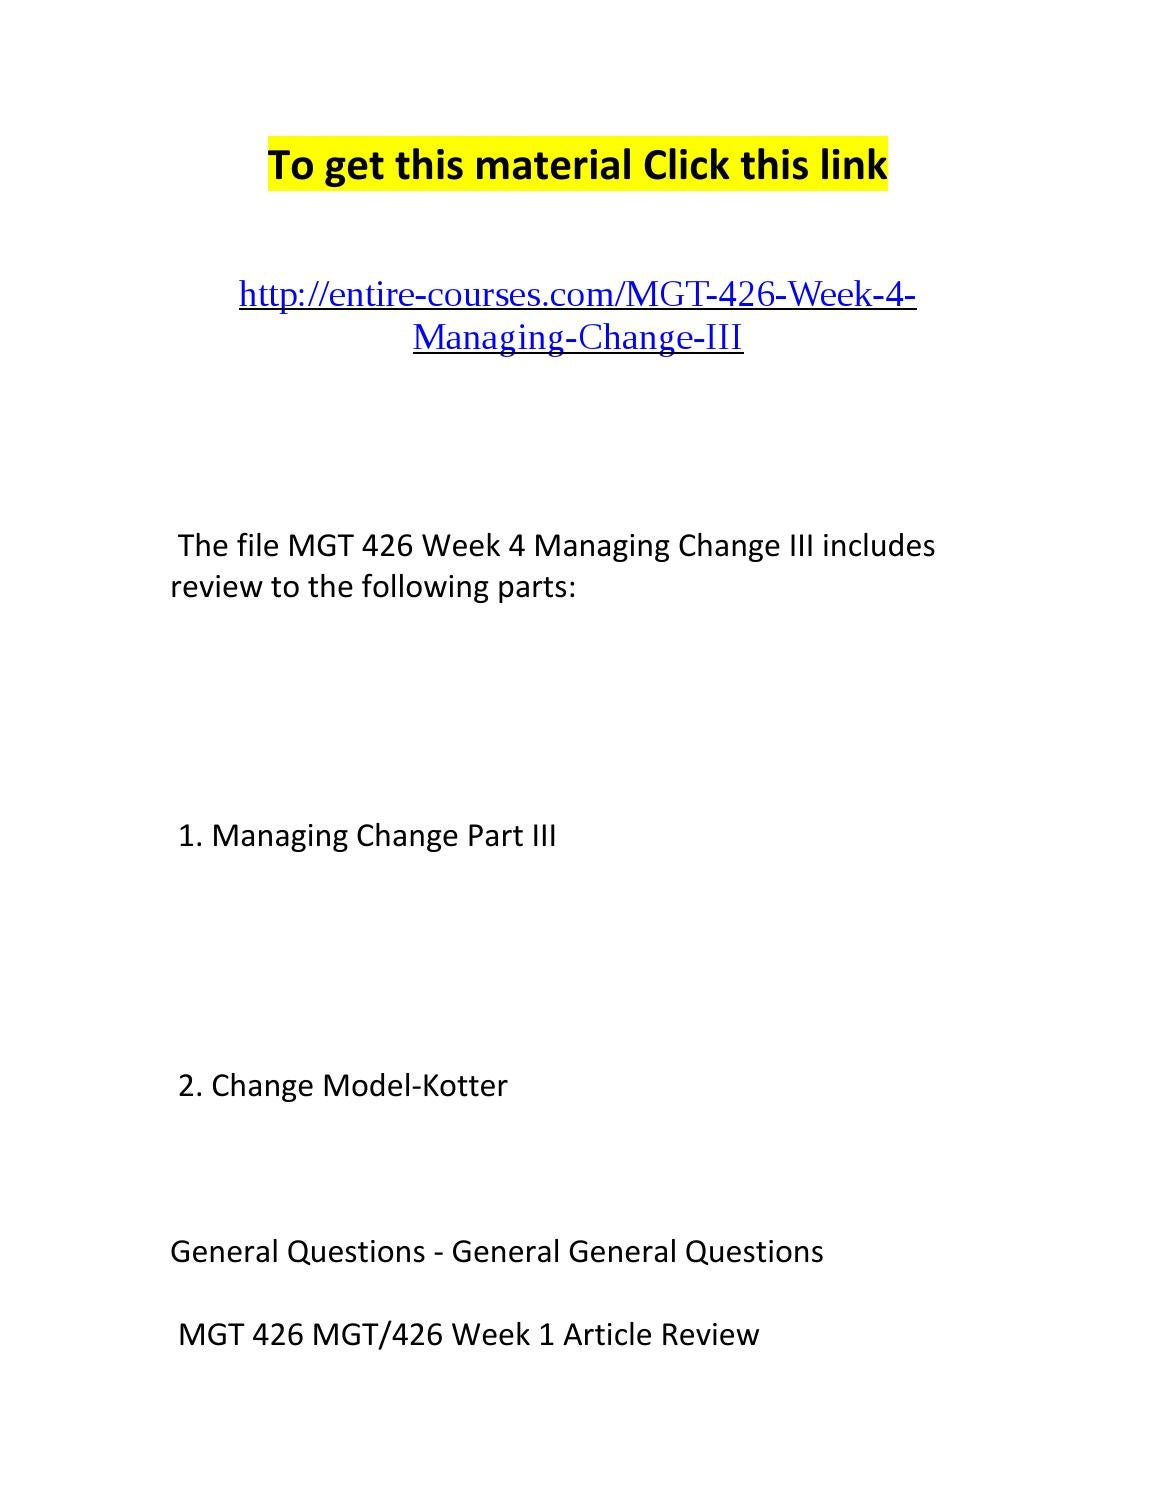 mgt 426 week 5 managing change Change management (sometimes abbreviated as cm) is a collective term for all approaches to prepare and support individuals, teams, and organizations in making organizational change it includes methods that redirect or redefine the use of resources, business process, budget allocations, or other modes of operation.